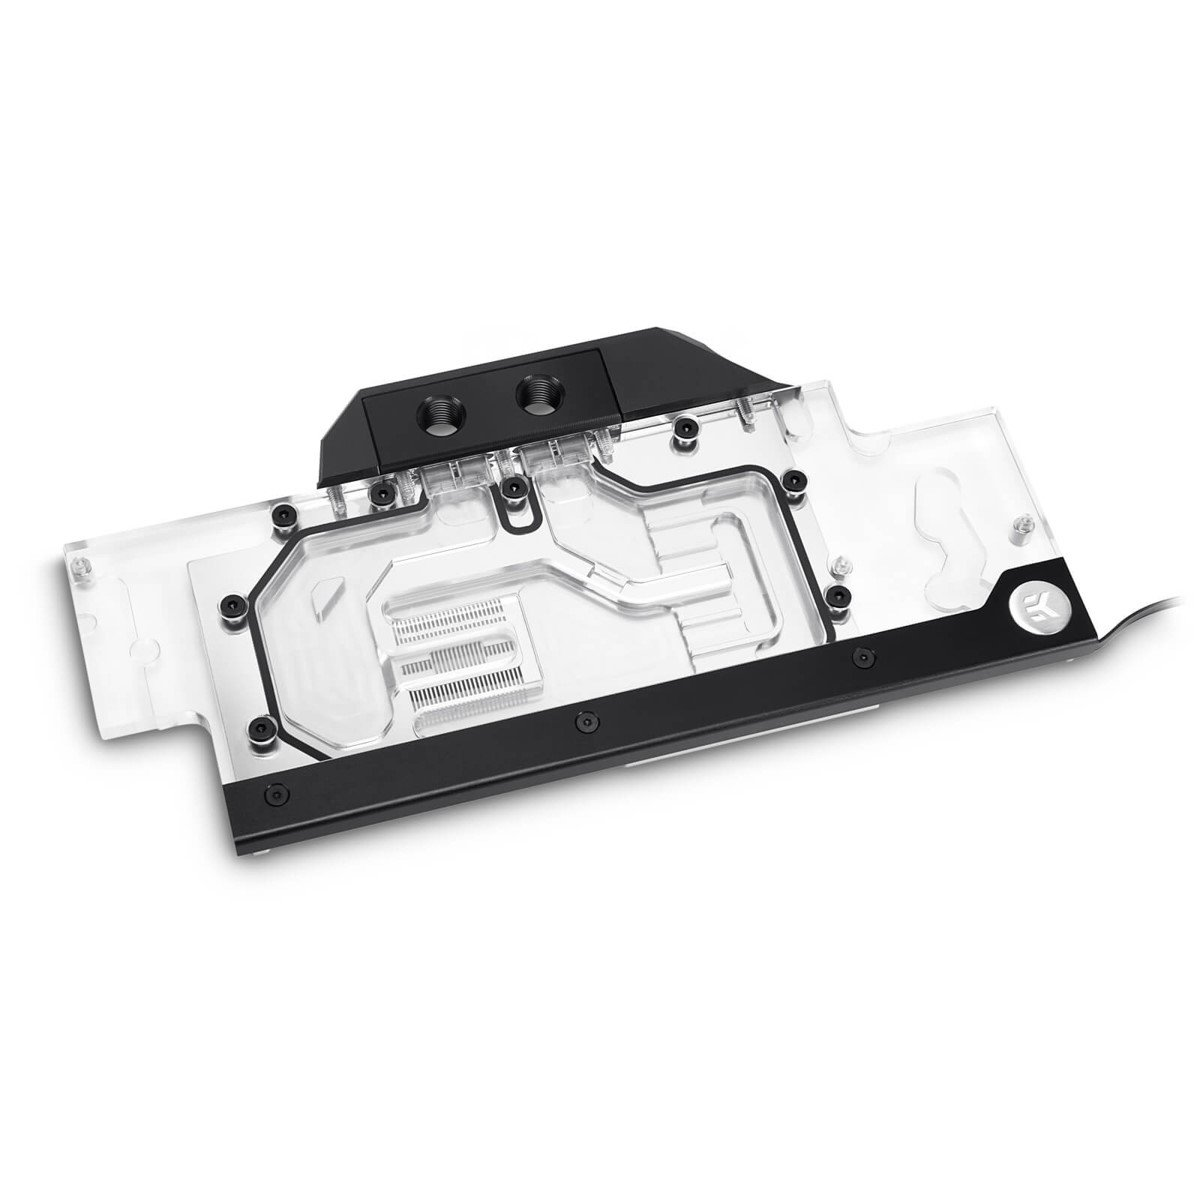 EKWB EK-FC GeForce GTX FE RGB GPU Waterblock, Nickel